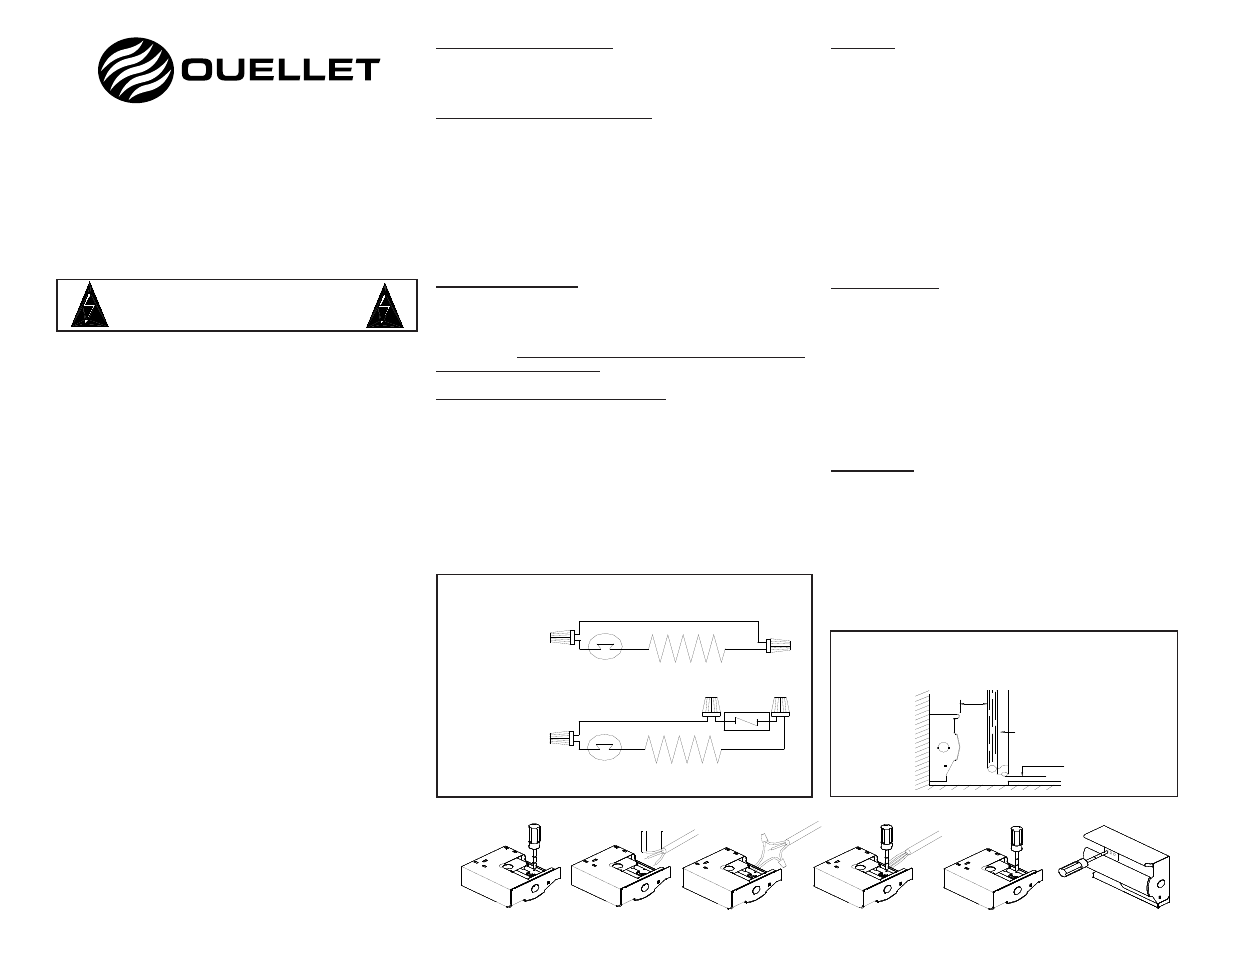 Ouellet Wall Heater Wiring Diagram Wire Center Electric Ofm User Manual 1 Page Rh Manualsdir Com Gas Heaters